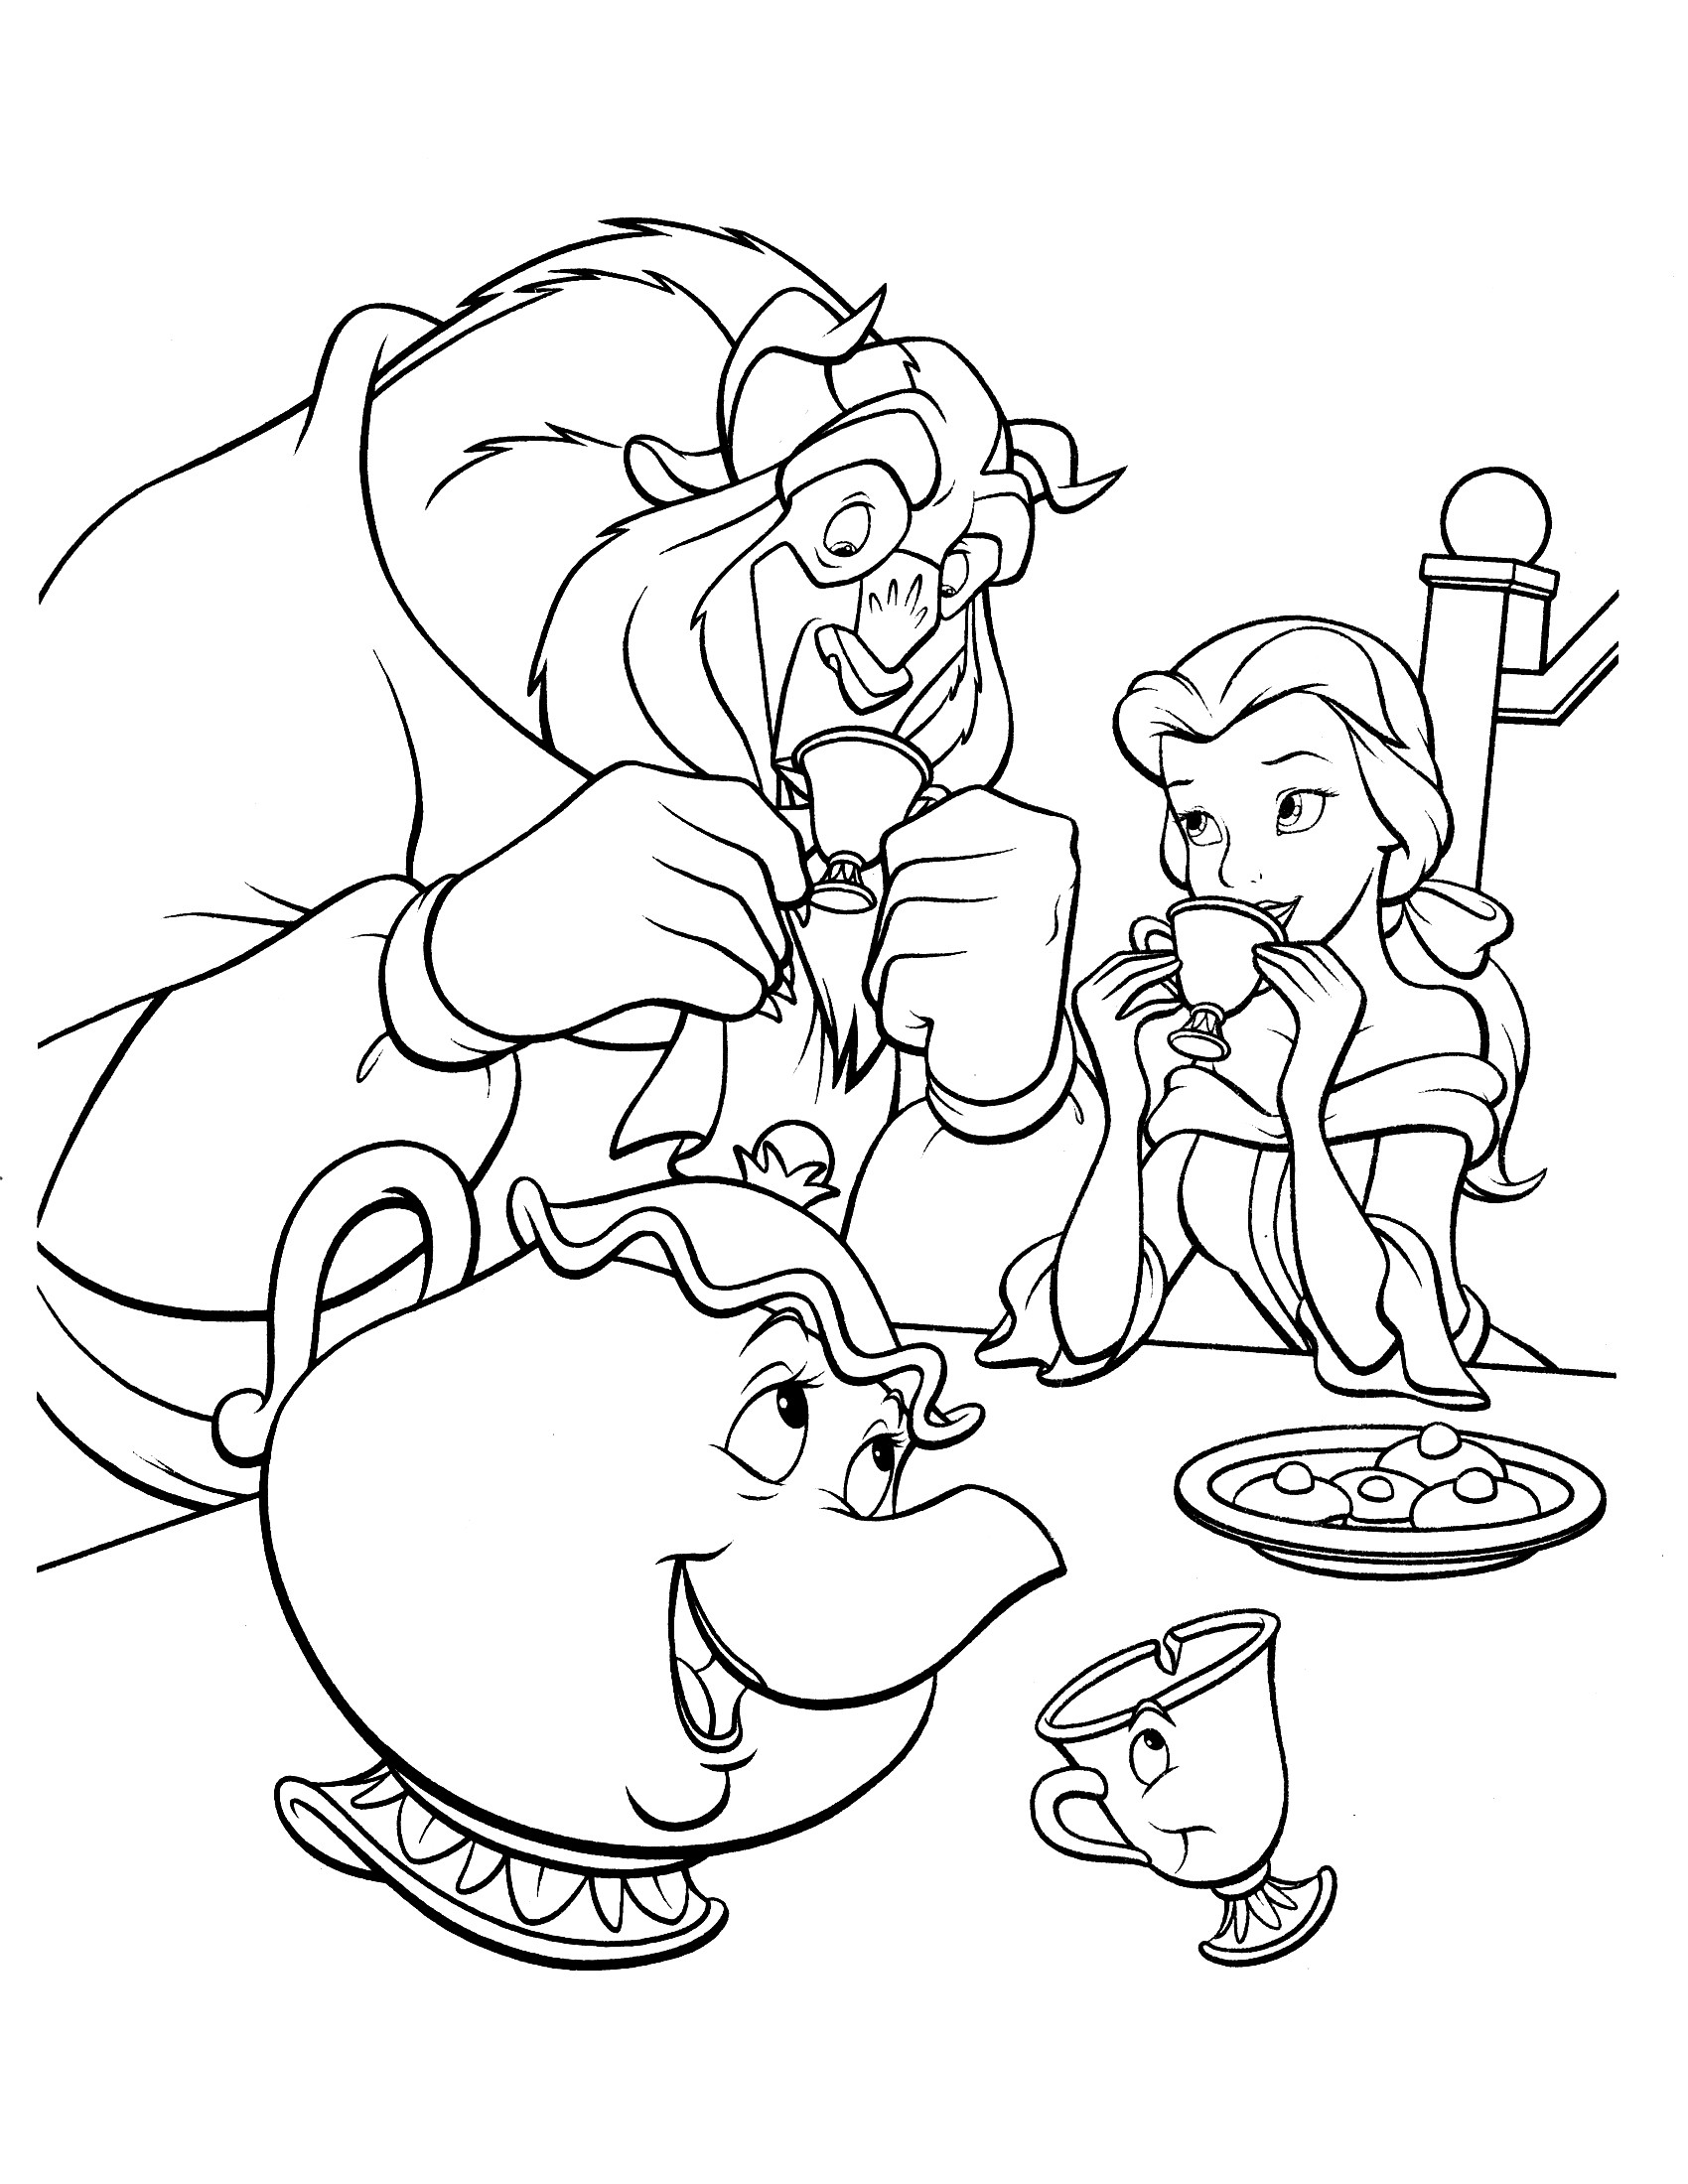 Beauty And The Beast Coloring Pages For Adults  Tale as Old as Time